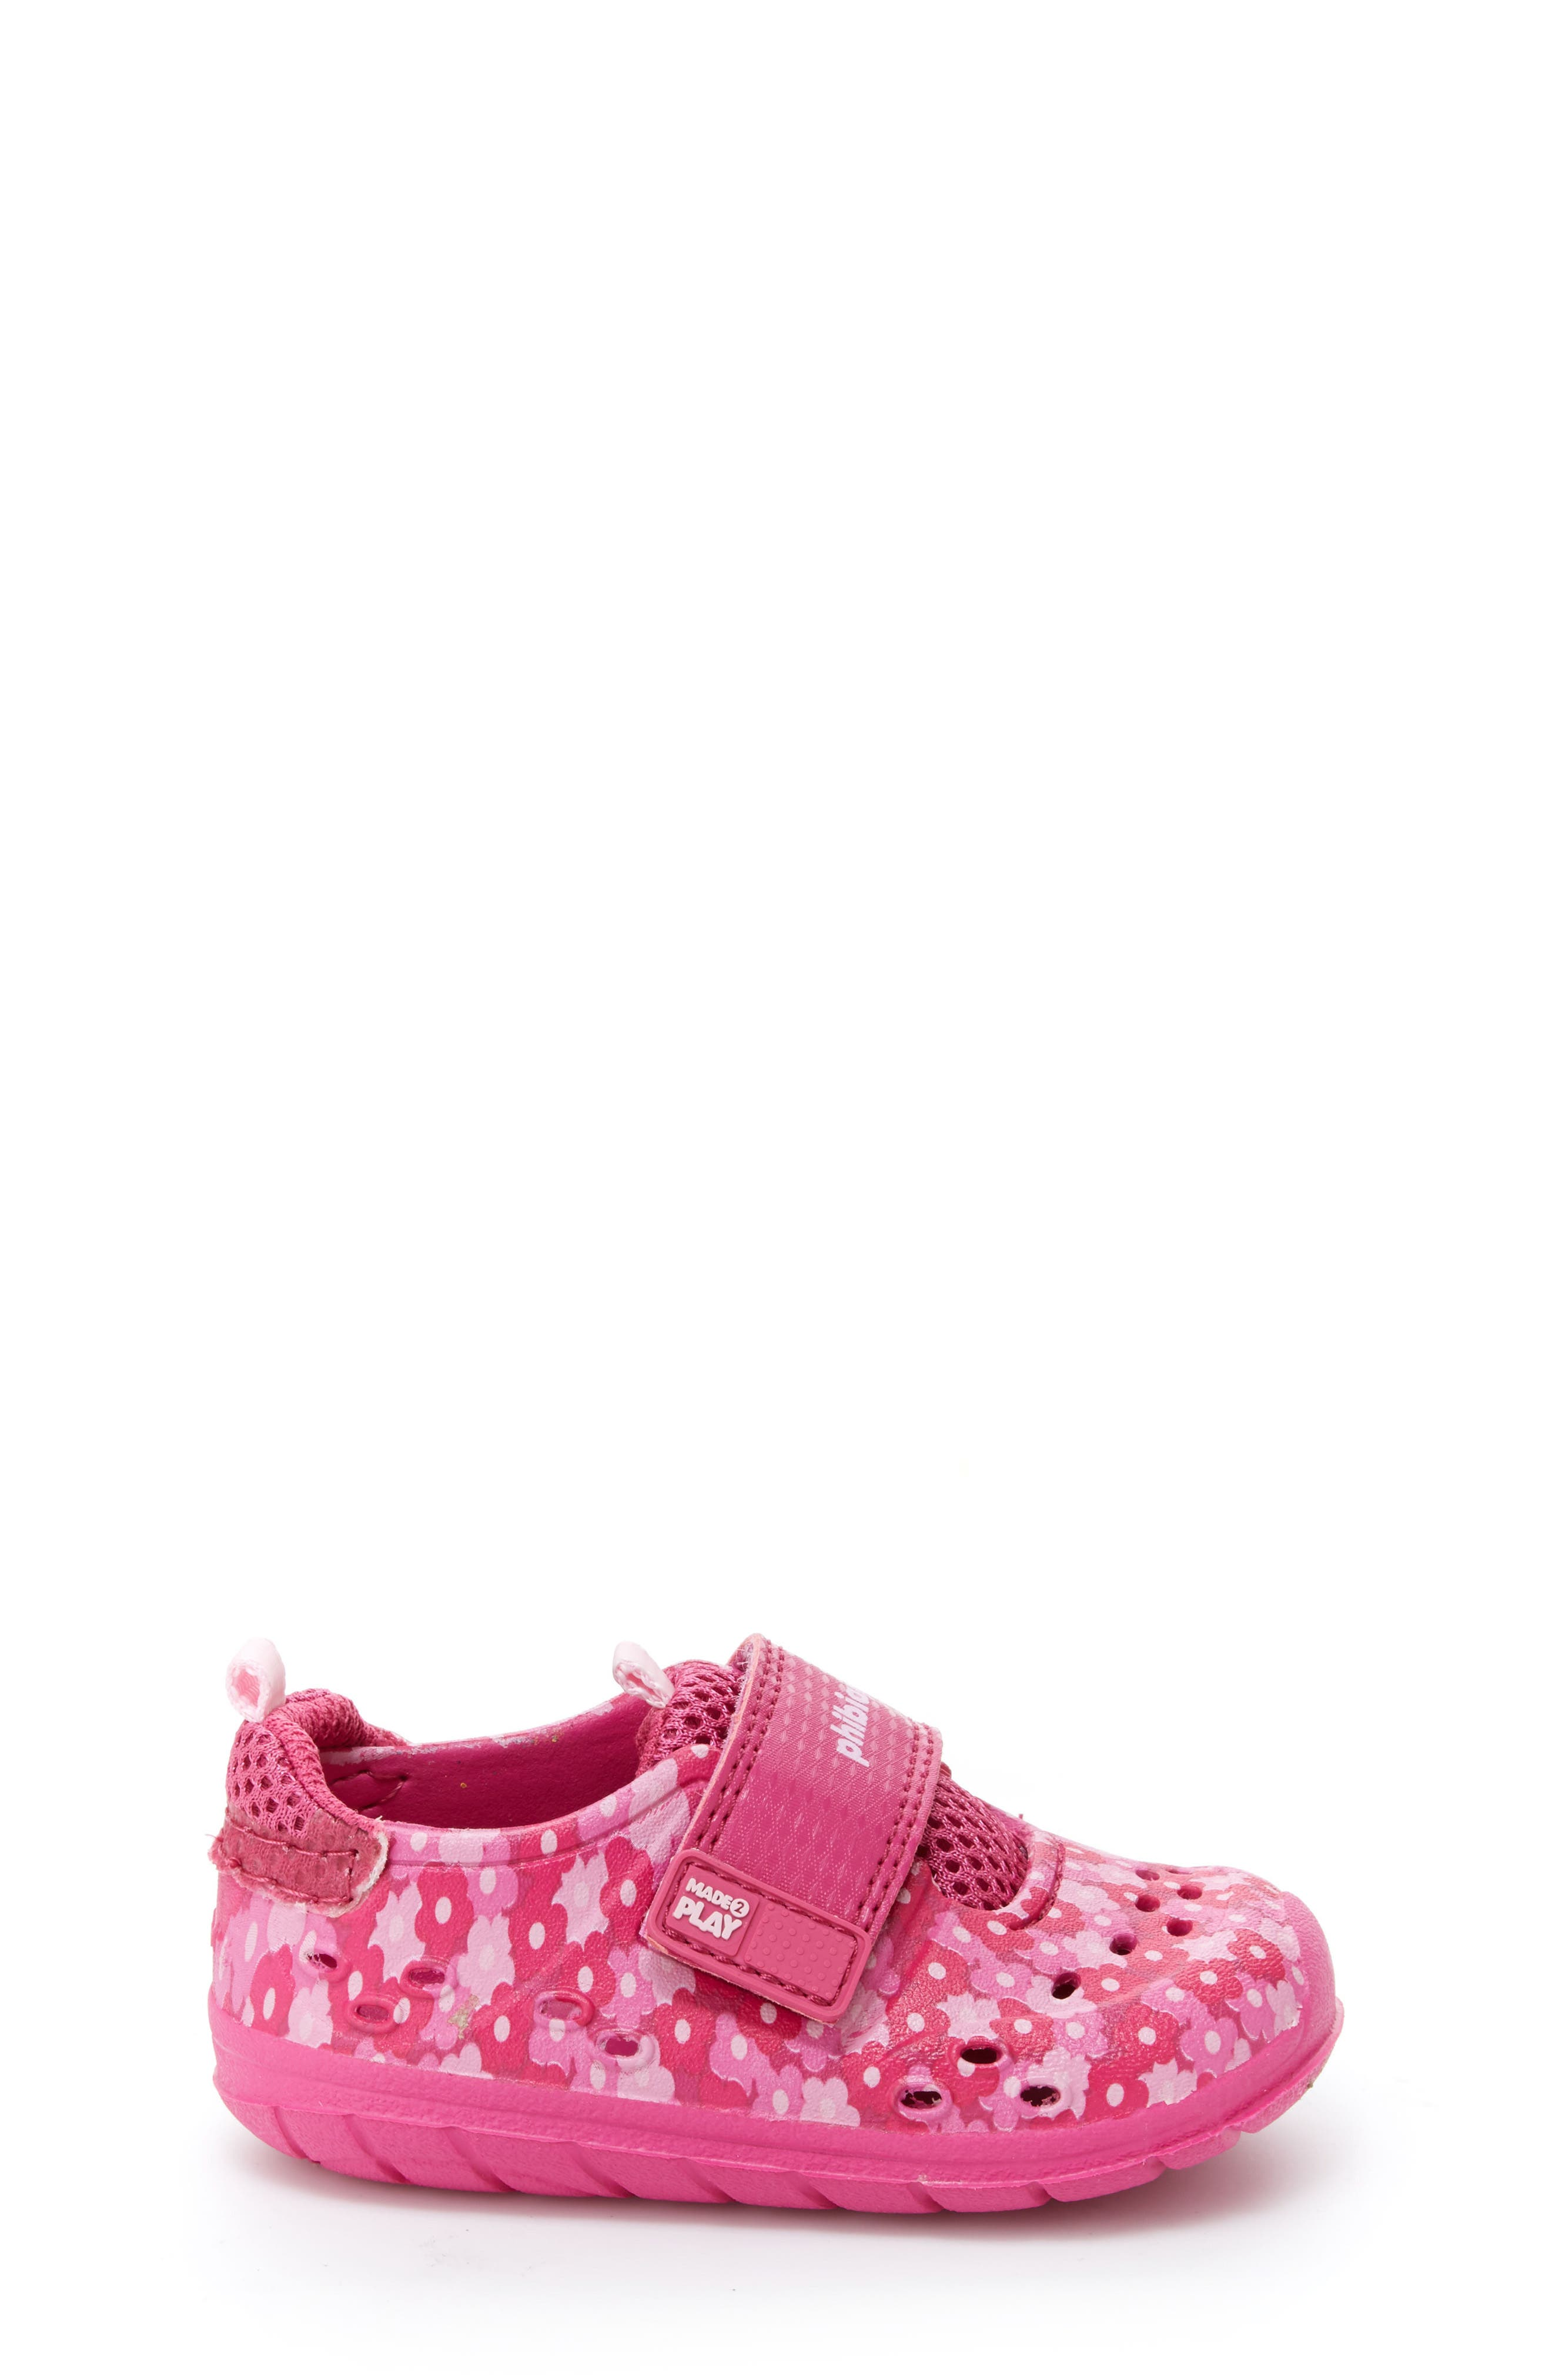 STRIDE RITE,                             Made2Play<sup>®</sup> Phibian Sneaker,                             Alternate thumbnail 3, color,                             PINK FLORAL EVA